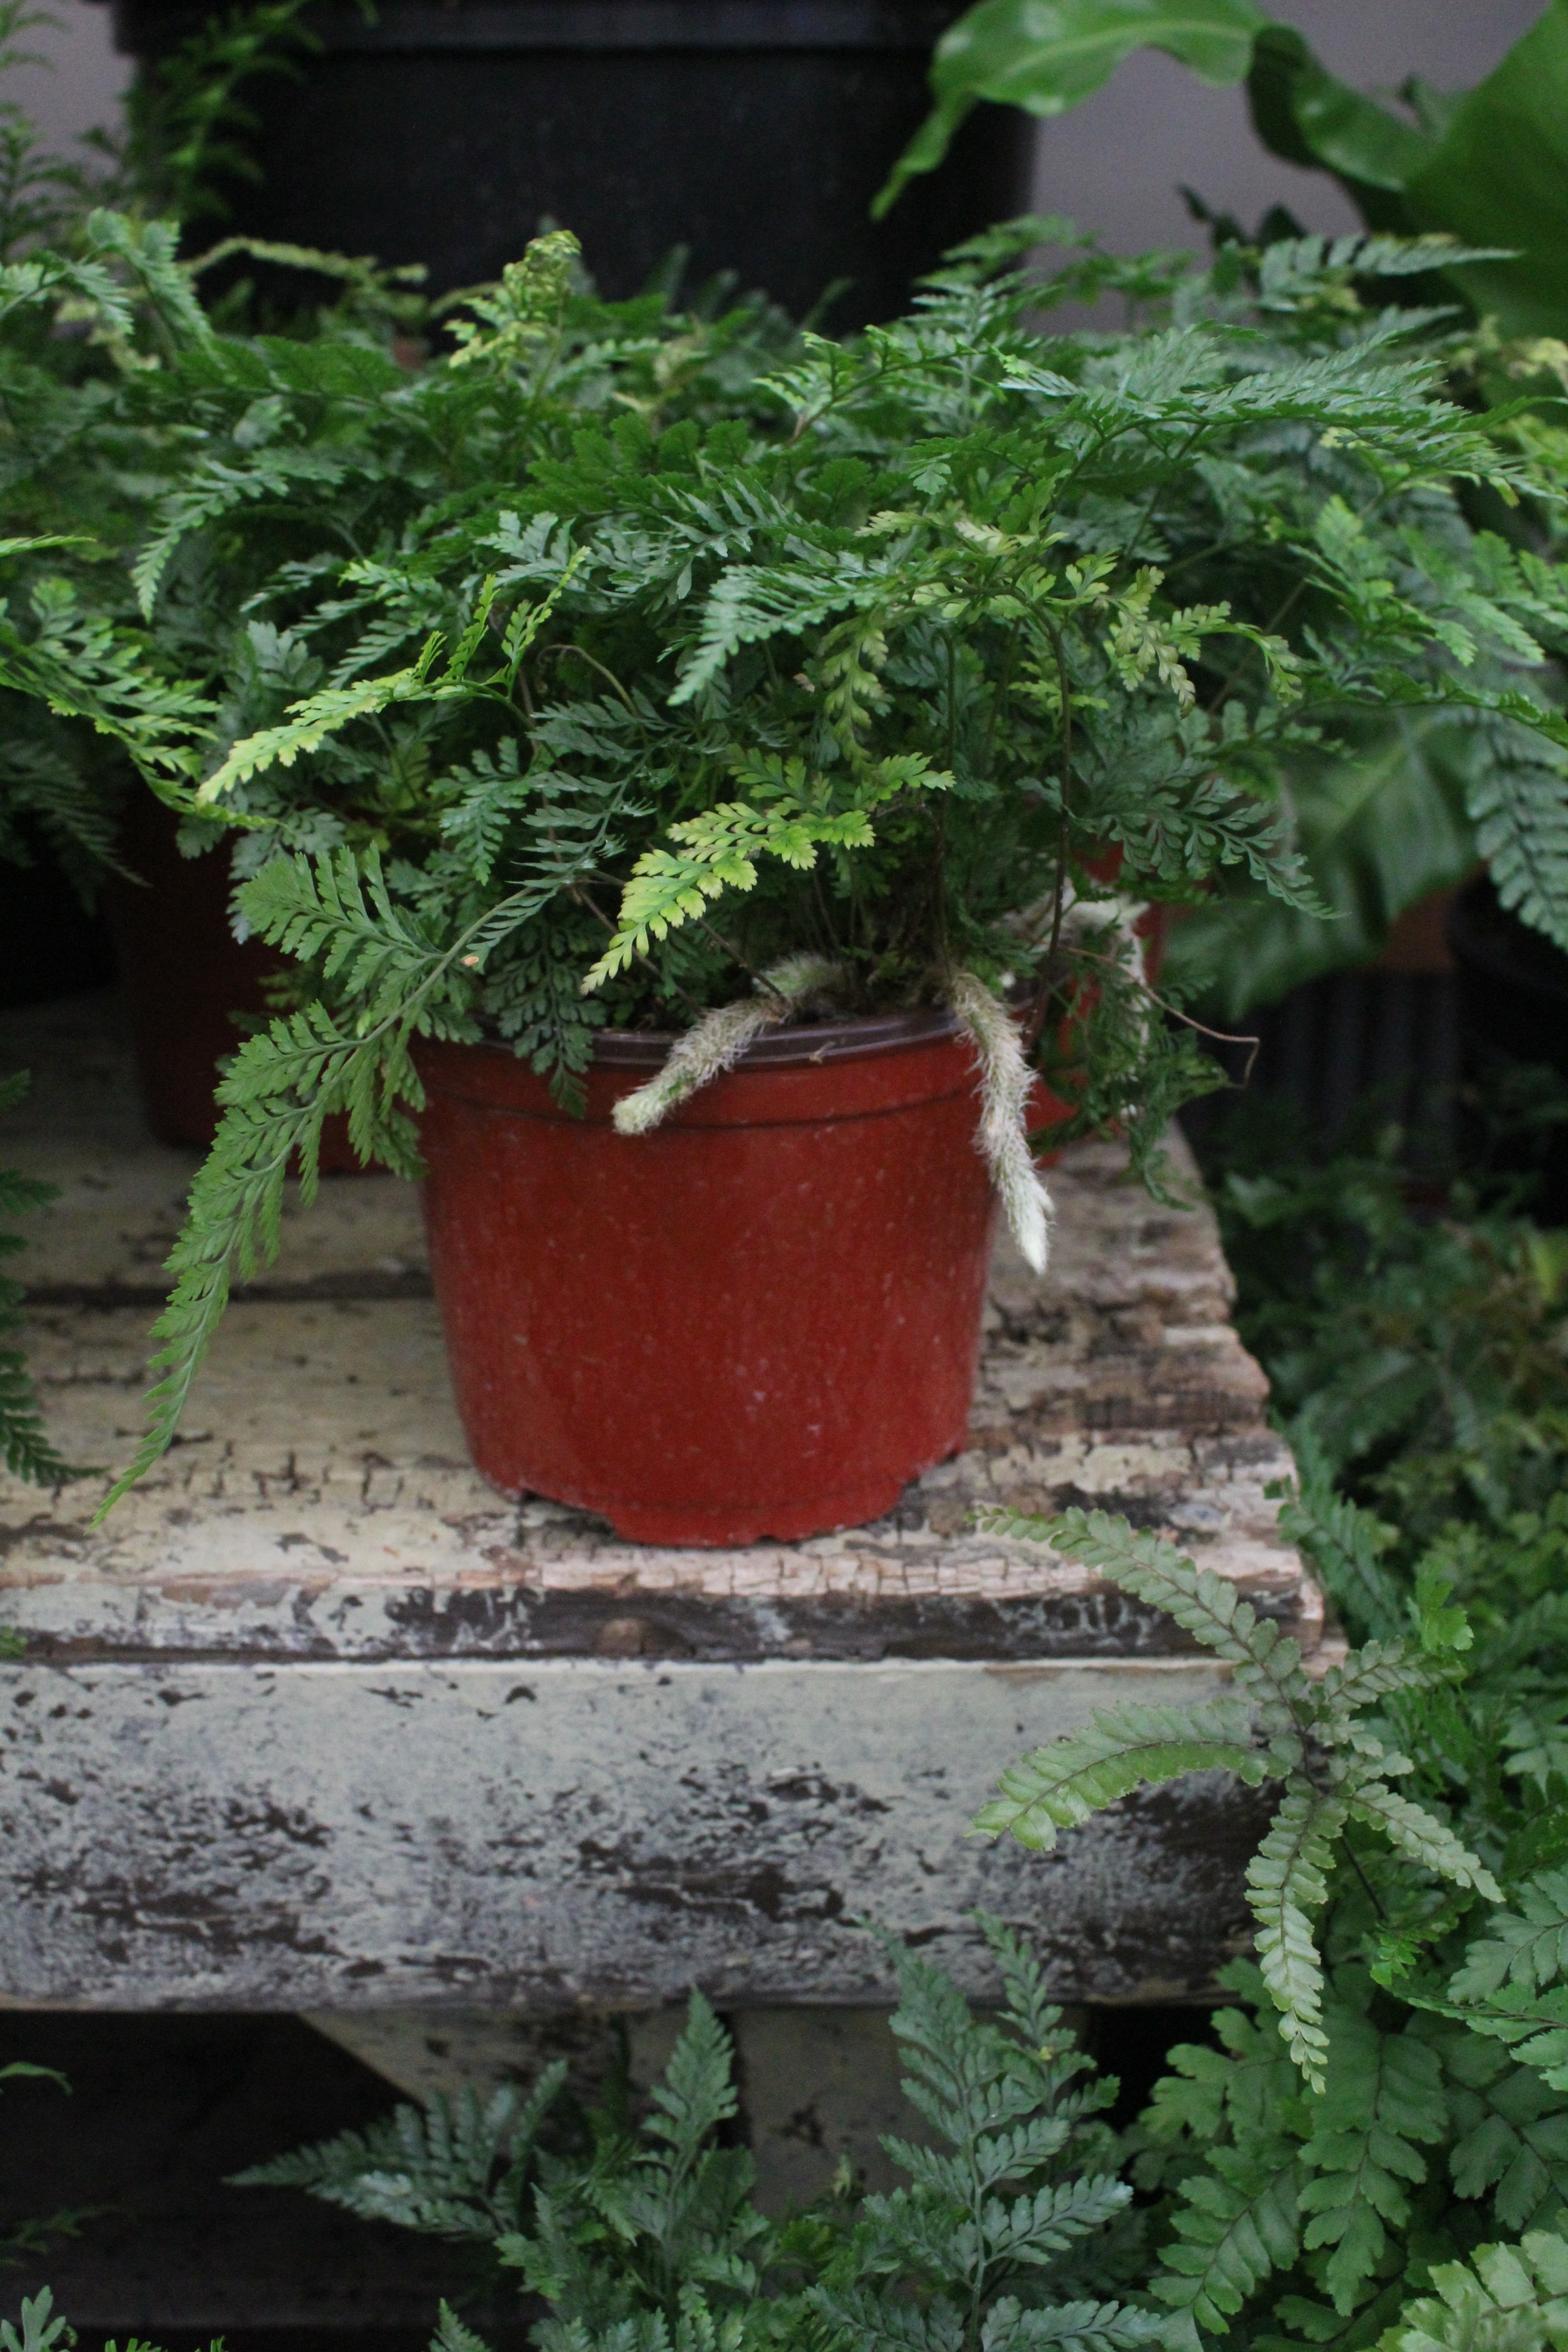 Rabbit Foot Fern - Botanical Name: Davallia fejeensisCare and Feeding: The rabbit foot fern has furry rhizomes hanging that drape over the sides of the container adding interest to an otherwise plain looking fern. Like all ferns it does well in low to bright indirect light, making any fern an easy addition to your home. (Try a few of the more unusual ones, Staghorn, maidenhair, bird's nest.) Water ferns regularly, keeping the top layer of soil moist and misting the fronds to help retain moisture. Give ferns a shower monthly to keep clean of pests and the rhizomes of rabbit's foot moist. Hang this plant or put on a high shelf so the